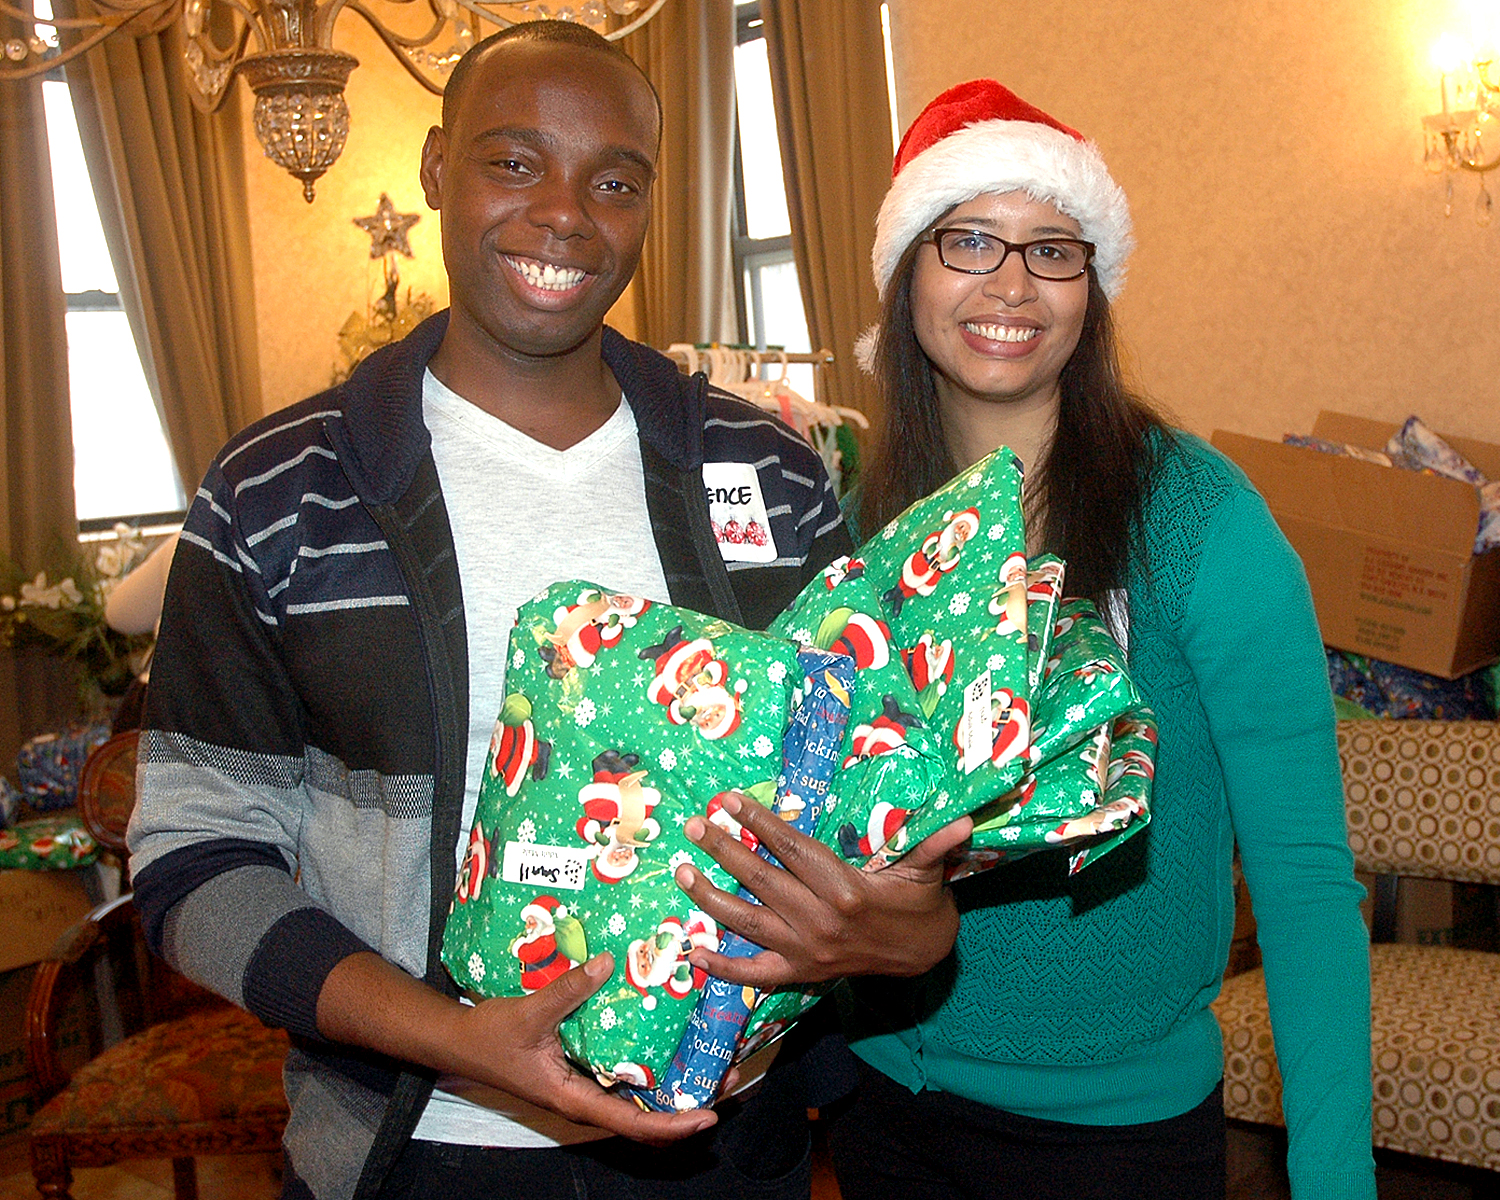 Staff members are ready to hand out holiday presents